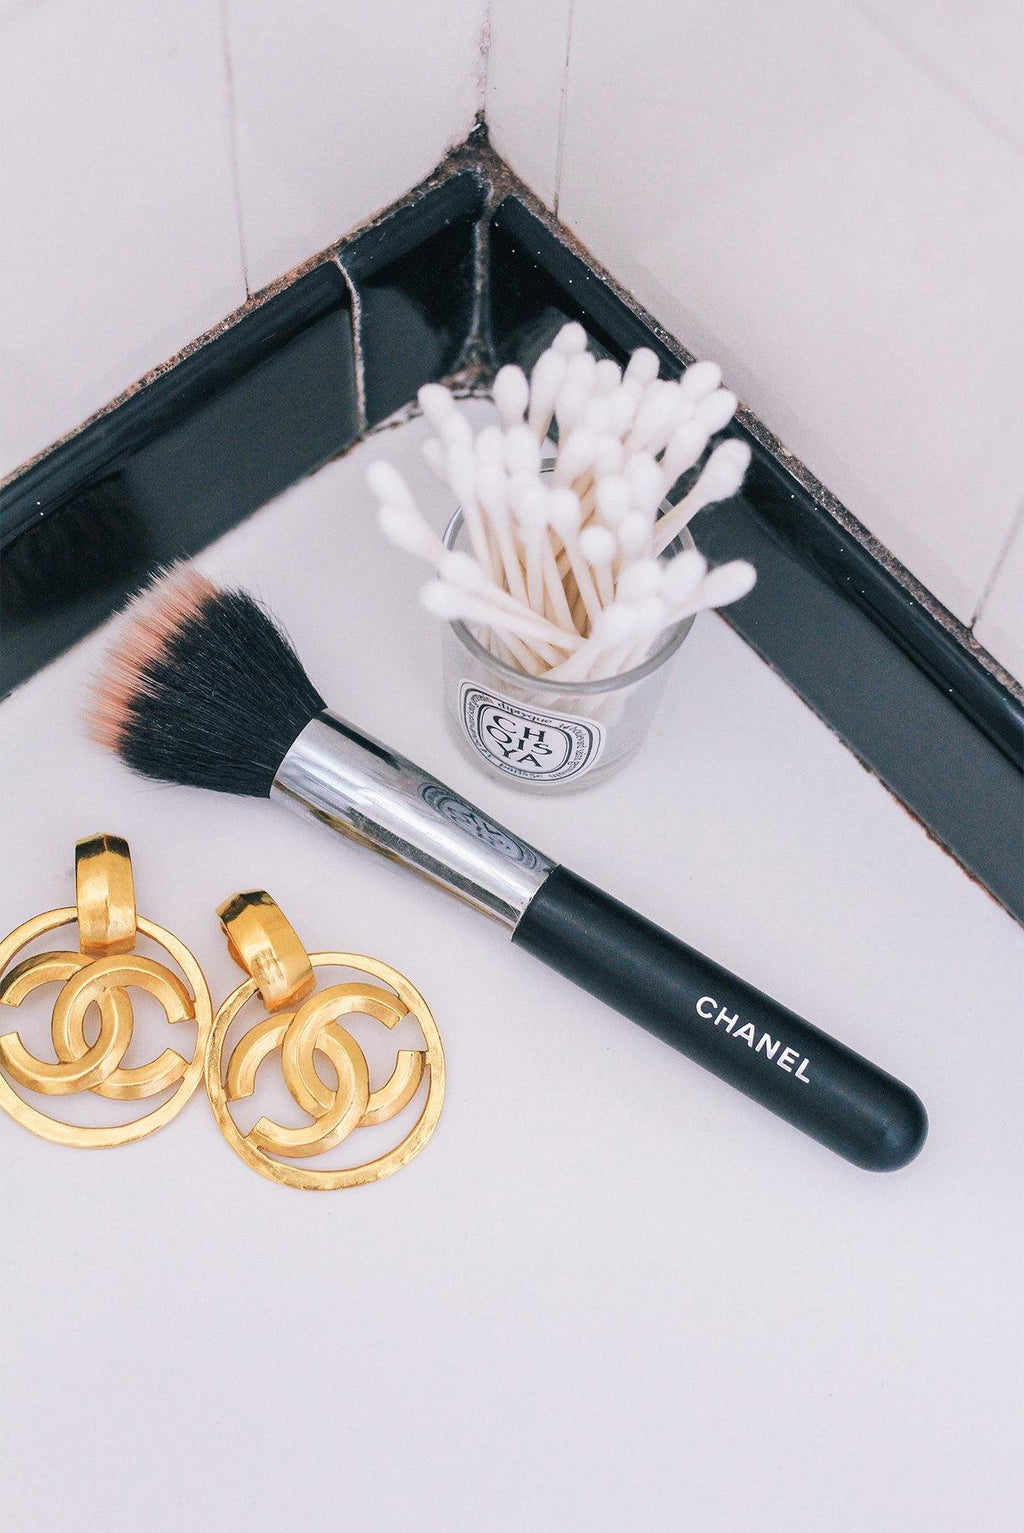 Chanel Les Pinceaux Foundation Blending Brush